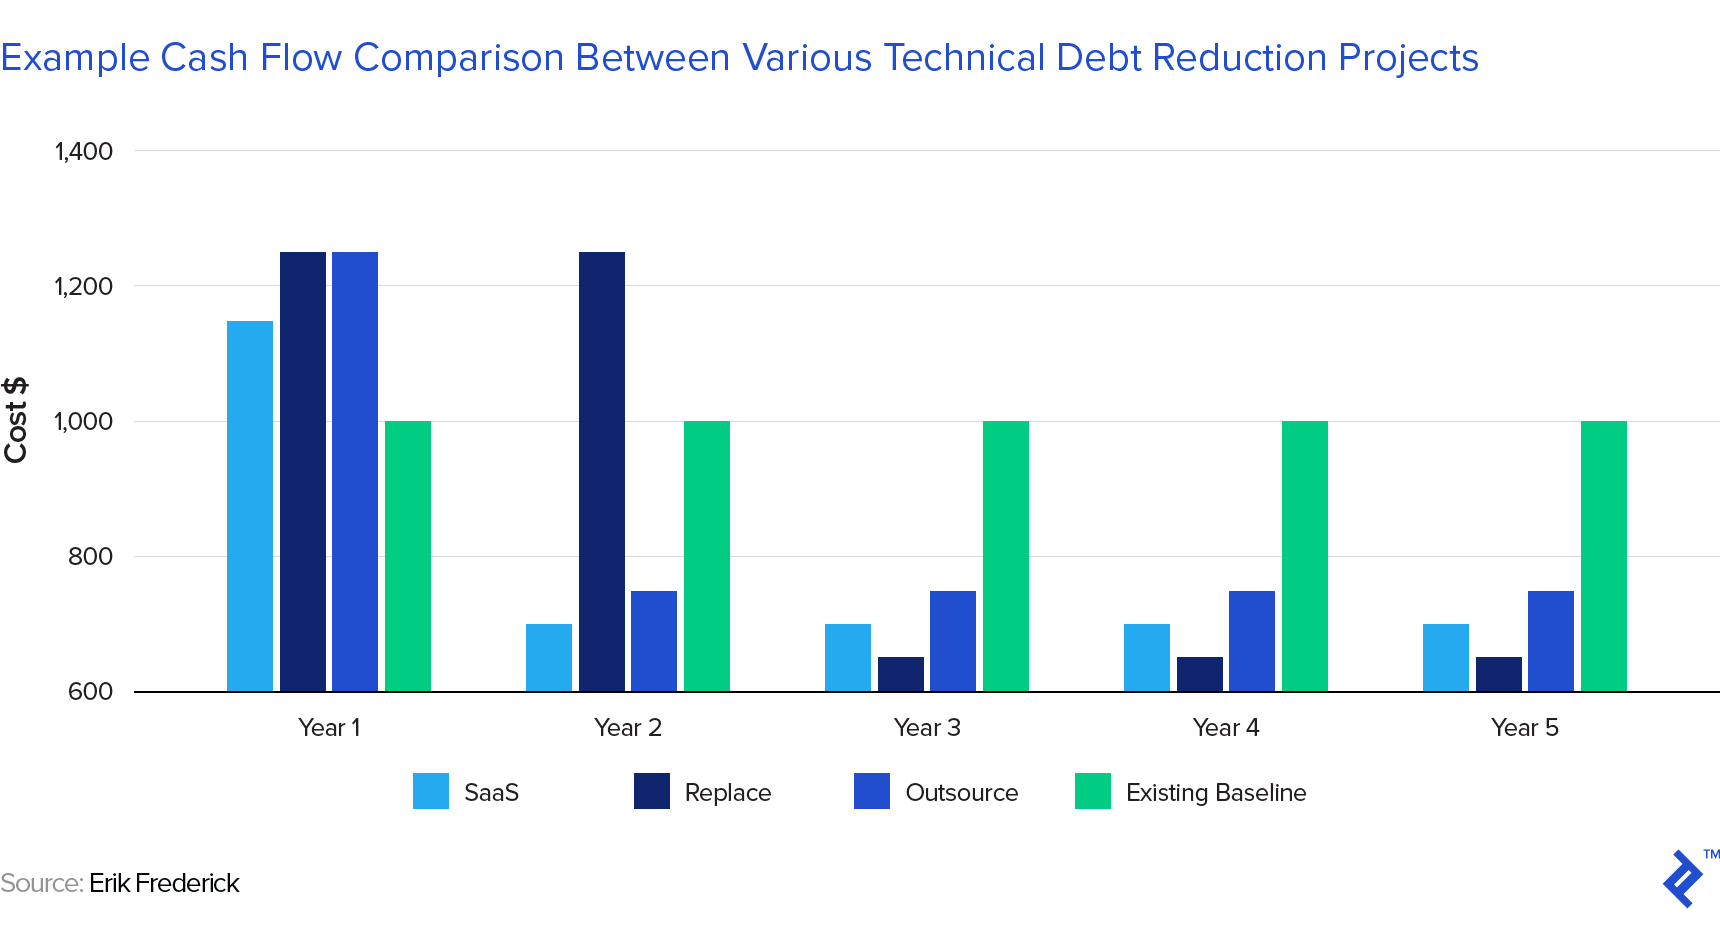 a bar chart showing an example cash flow comparison between various technical debt reduction projects